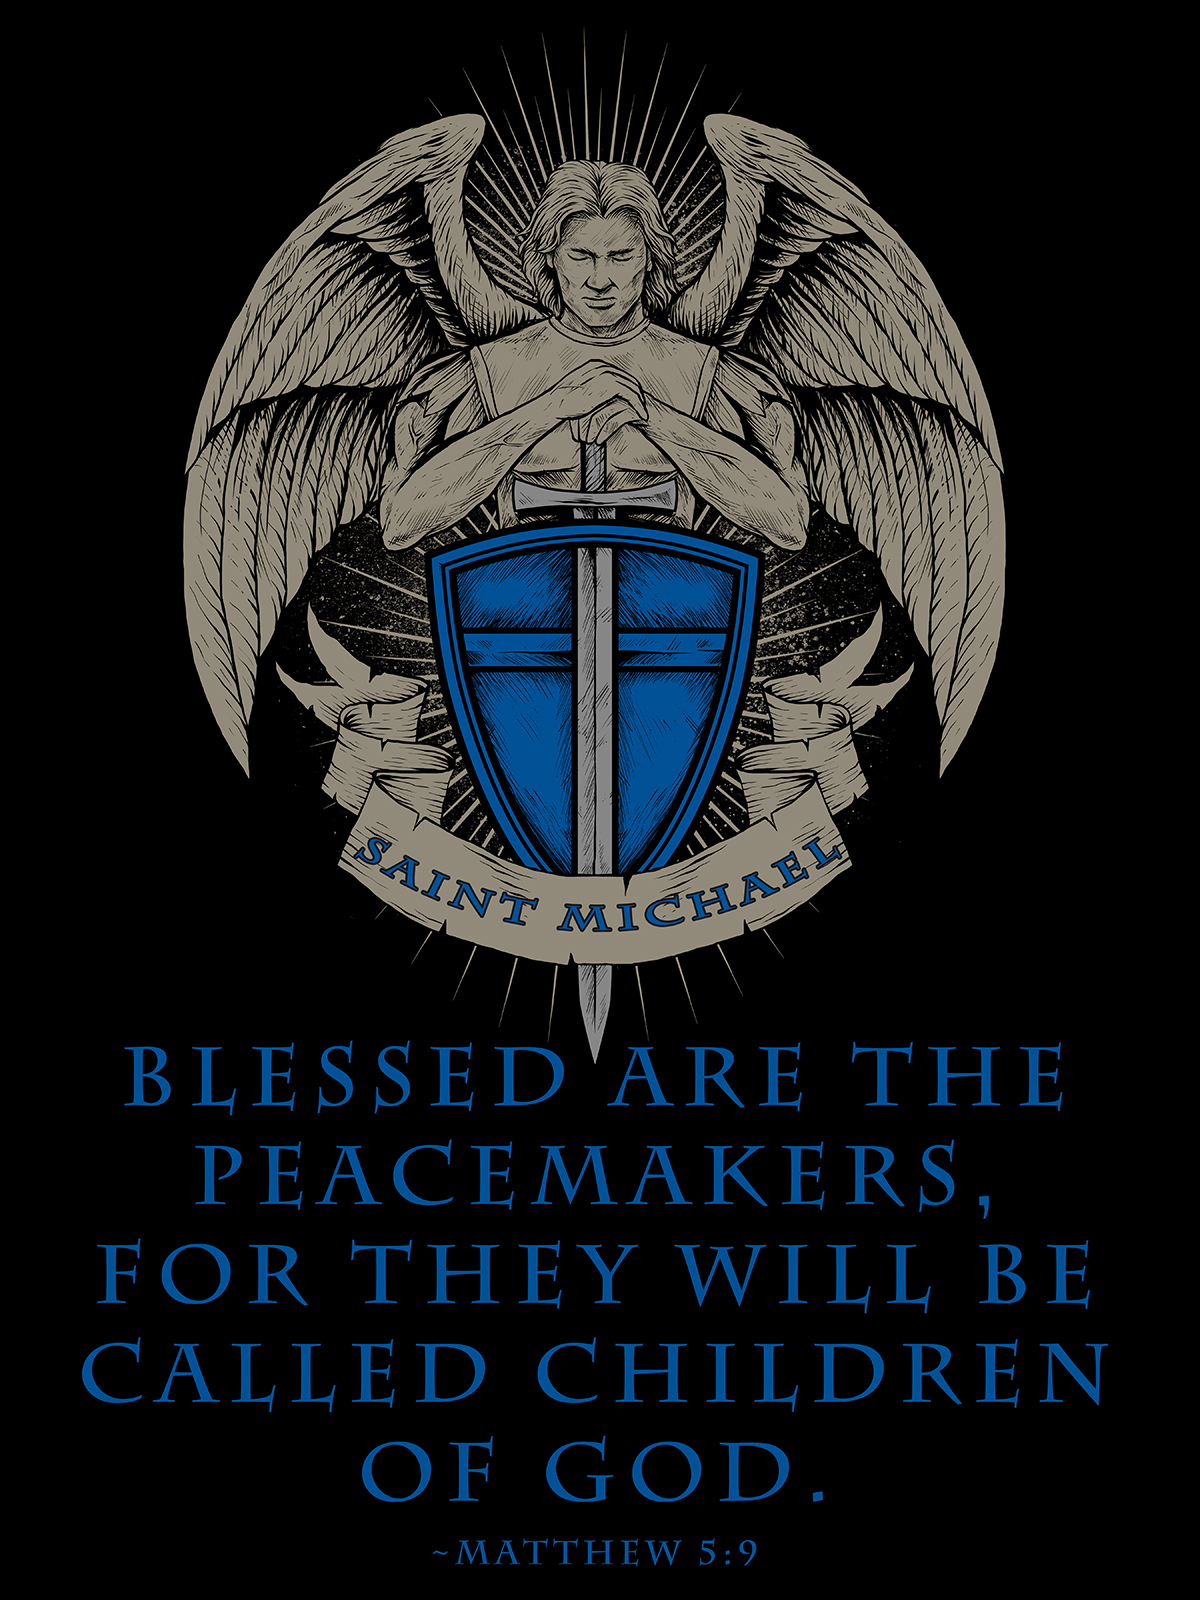 saint michael blessed are the peacemakers poster